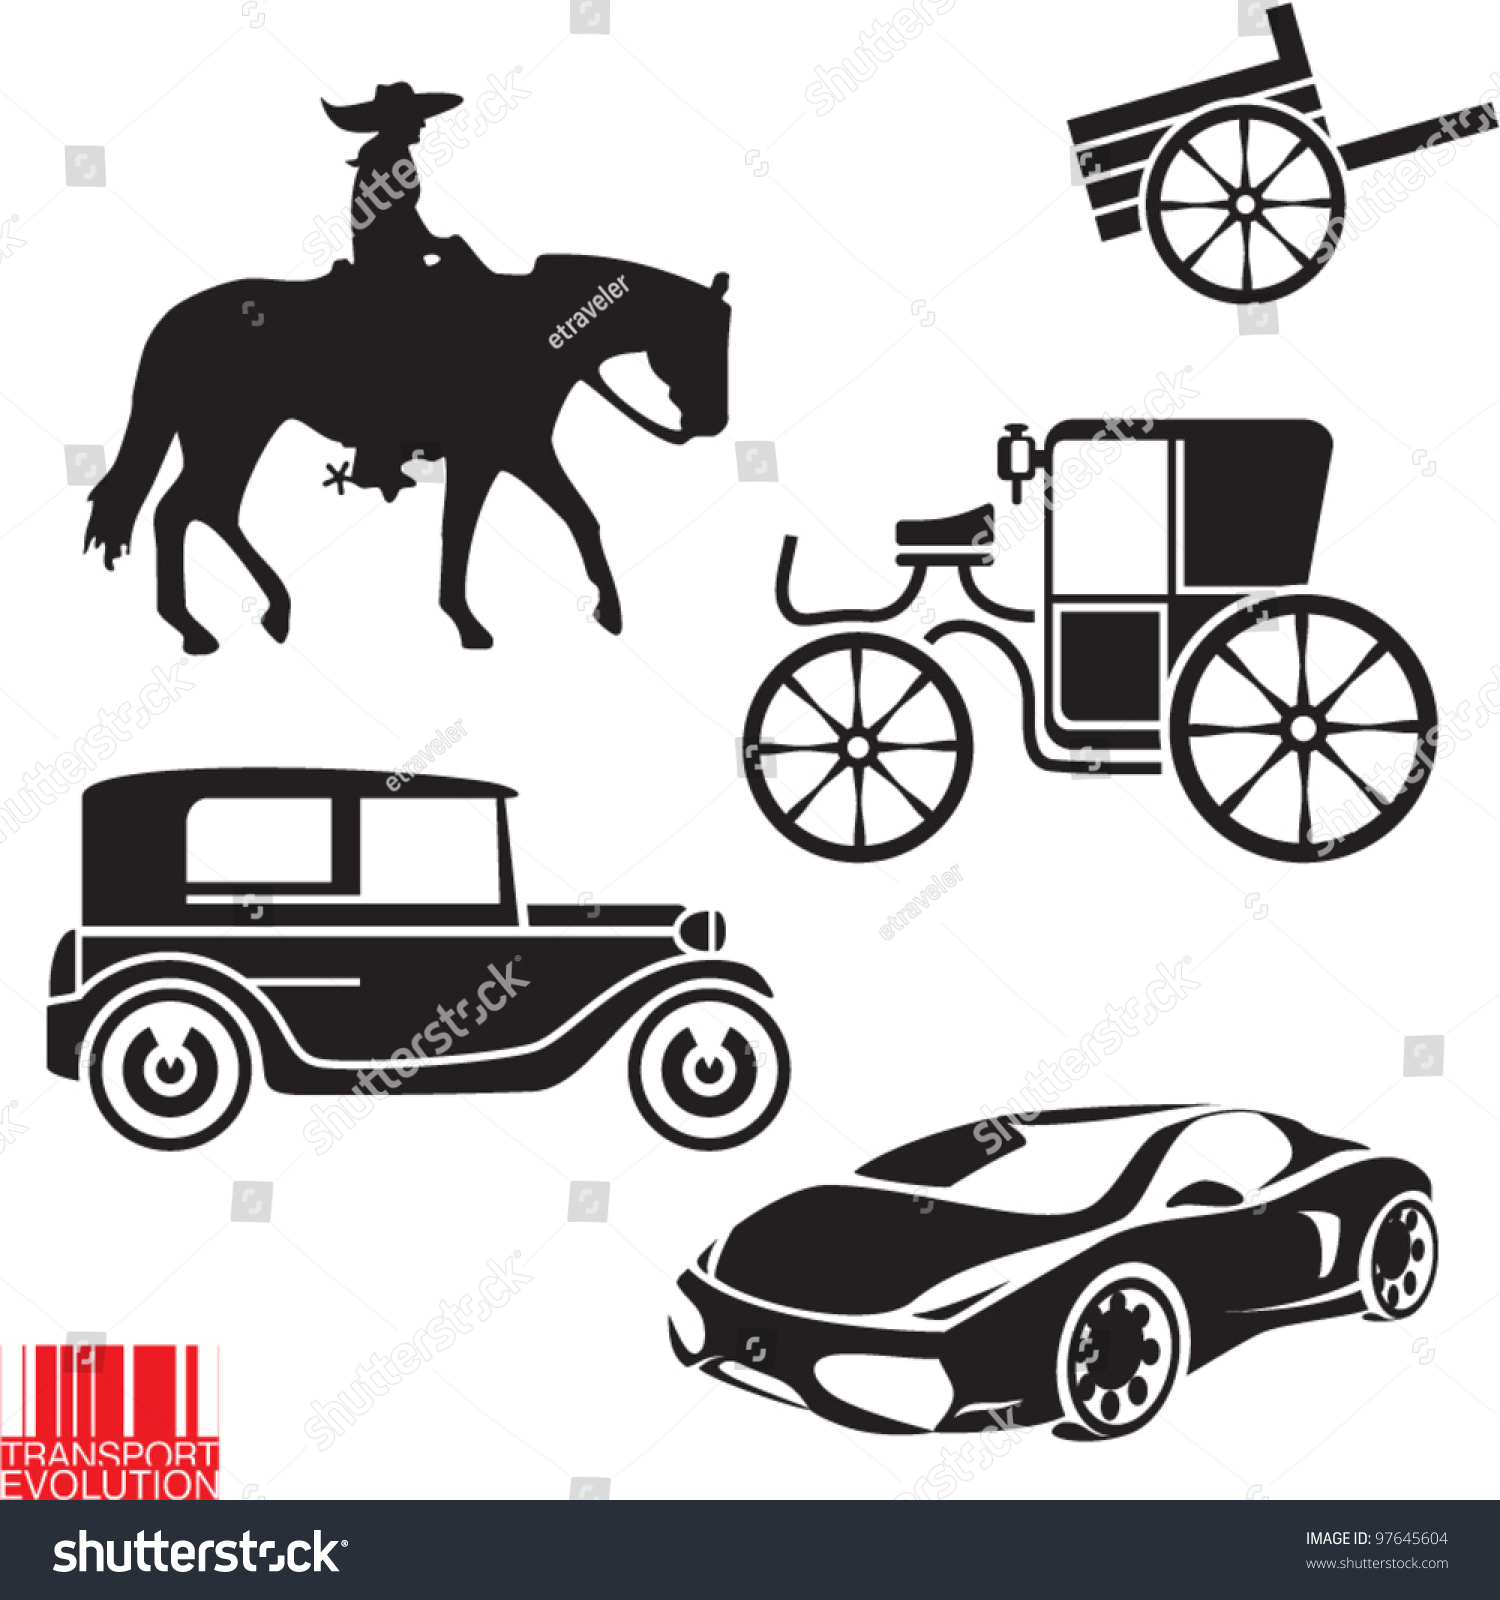 evolution of transportation A brief history of transportation/energy the dawn of time post-dawn of time circa 1400 circa 1800 circa 1900 circa 1950.